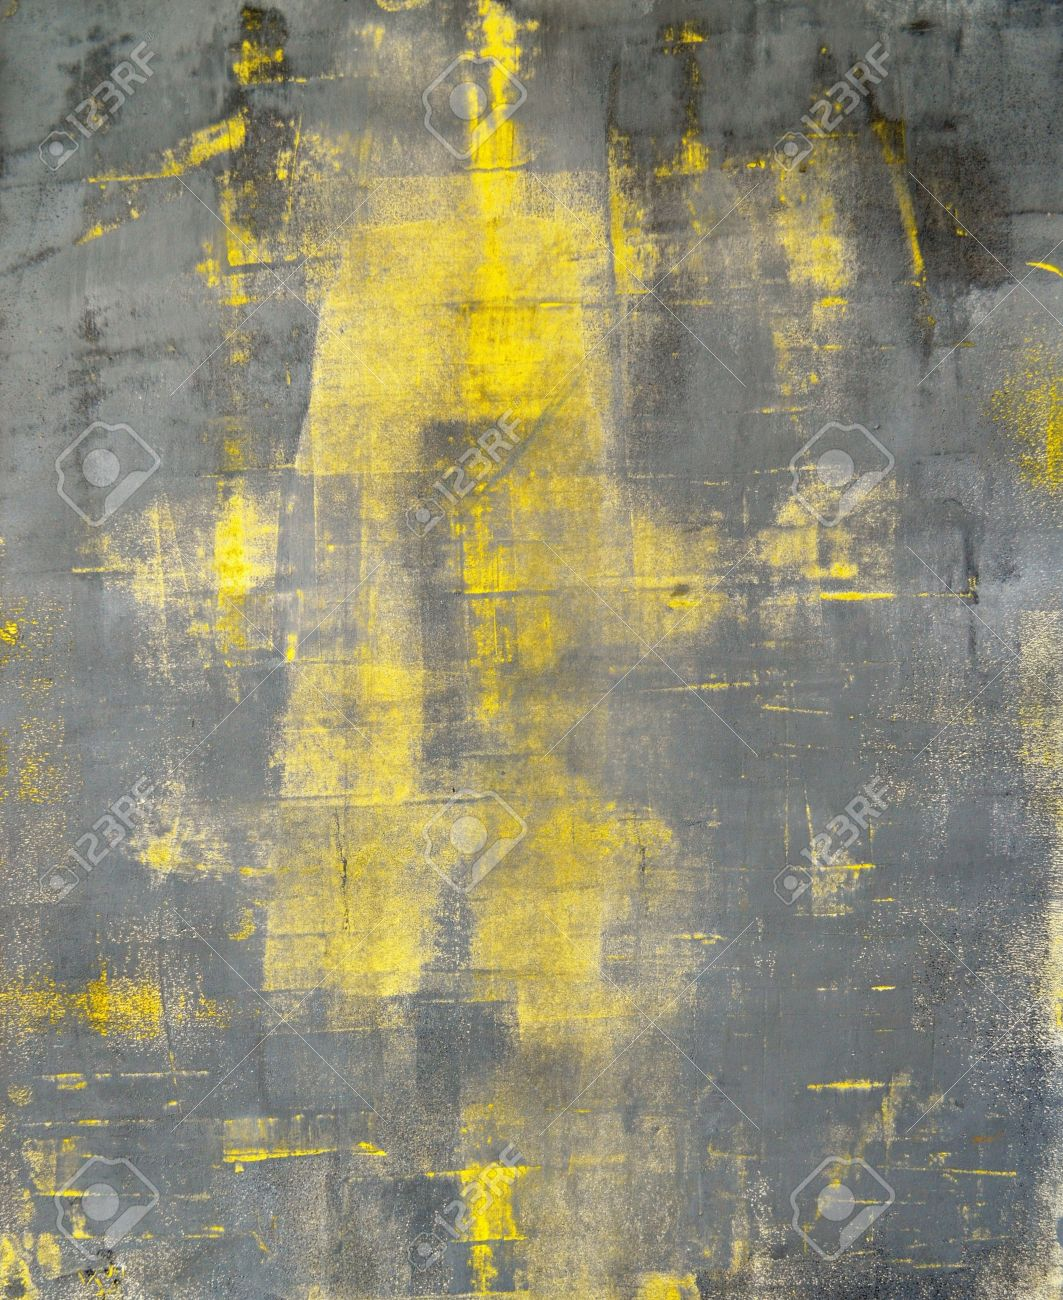 cb8b5e40902 Grey and Yellow Abstract Art Painting Stock Photo - 20354242